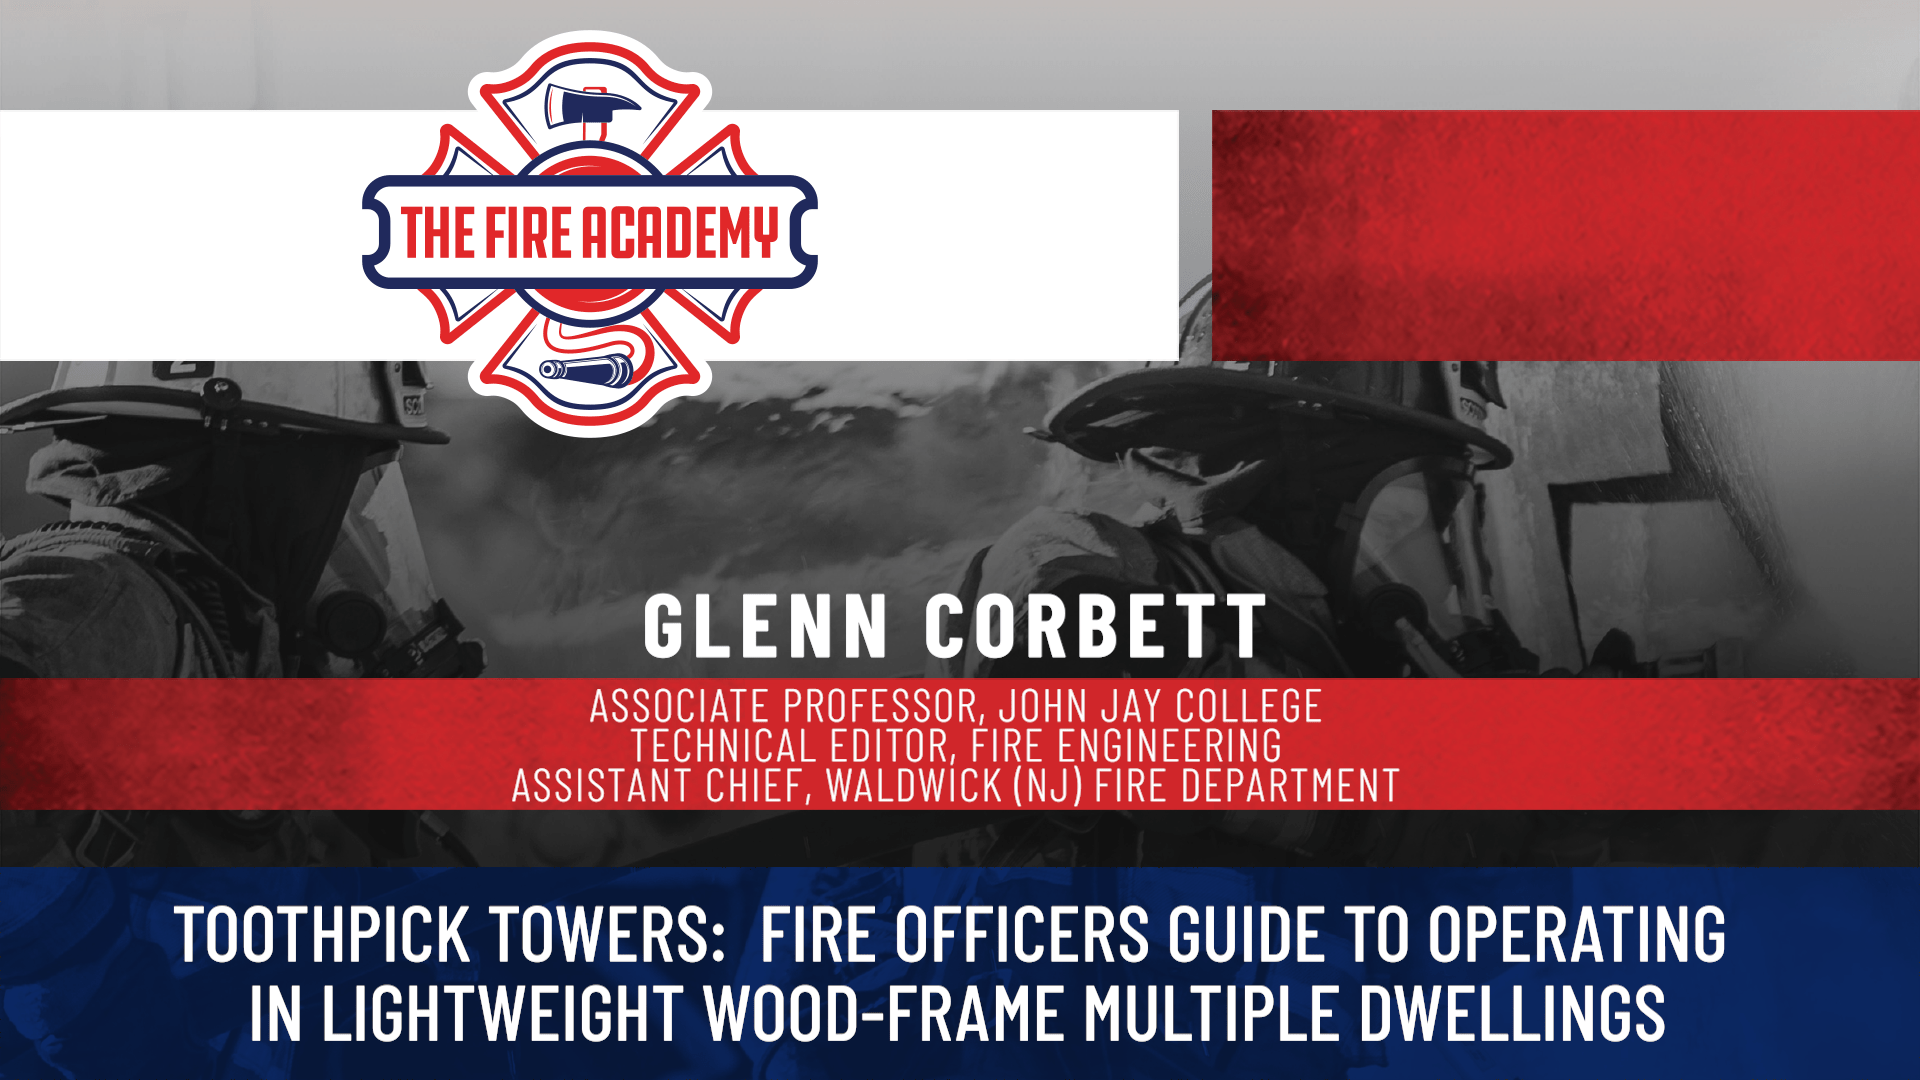 Toothpick Towers: A Fire Officer's Guide to Operating in Lightweight Wood-Frame Multiple Dwellings